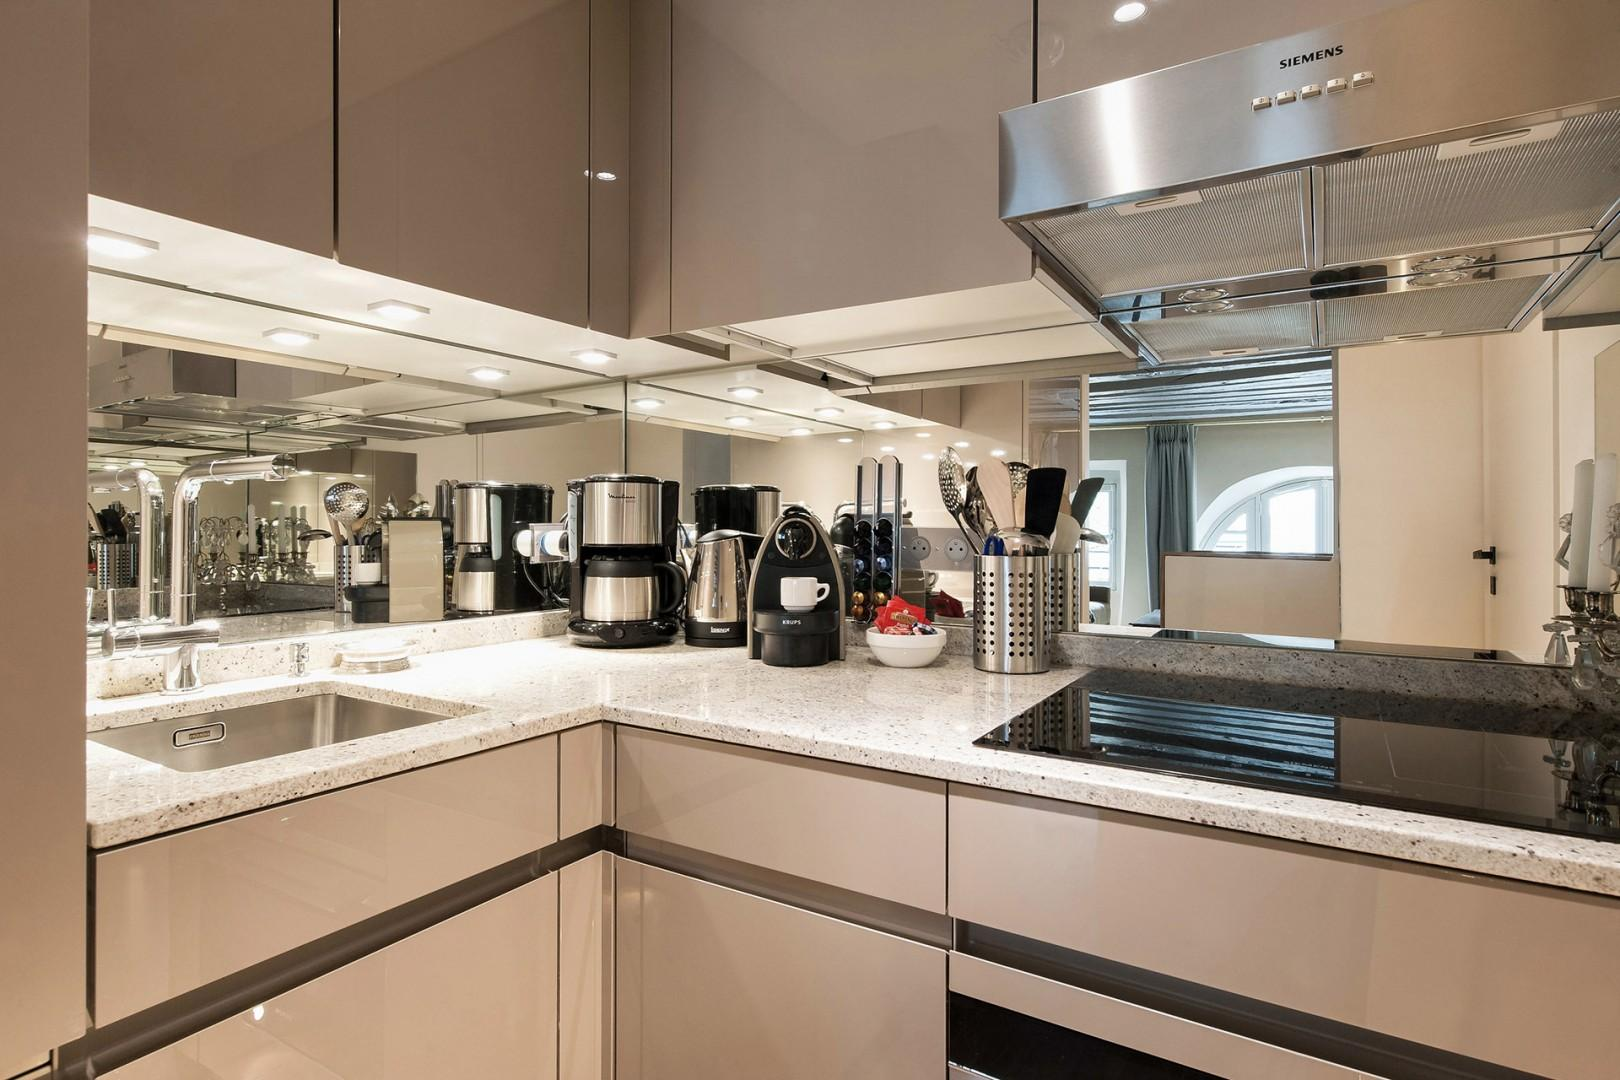 Make wonderful meals in this finely finished kitchen.